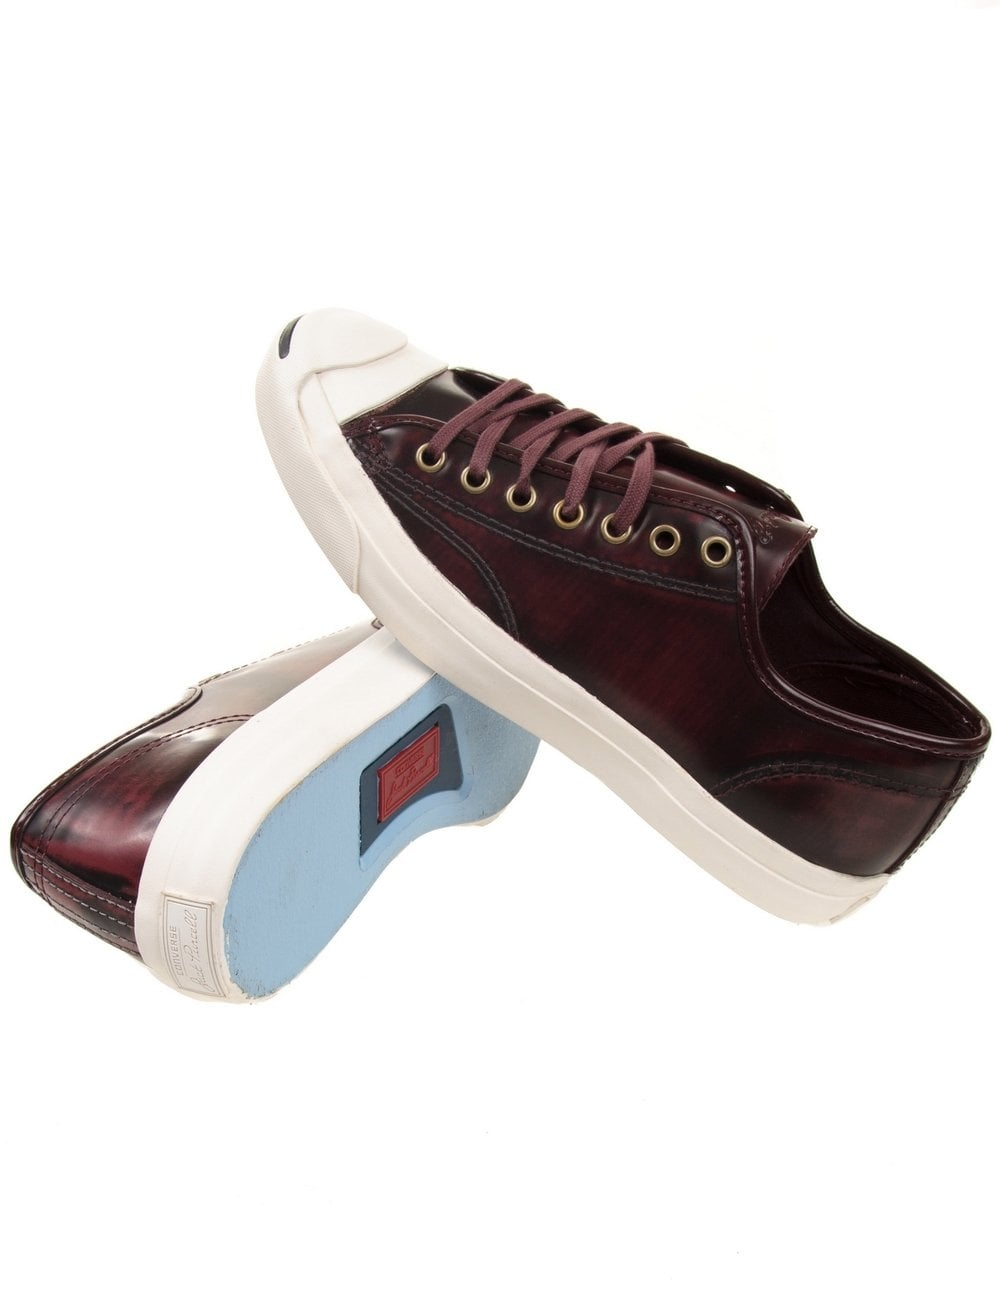 81205c6f0777 ... converse jack purcell® ltt washed ox LTT OX Shoes - Oxheart ...